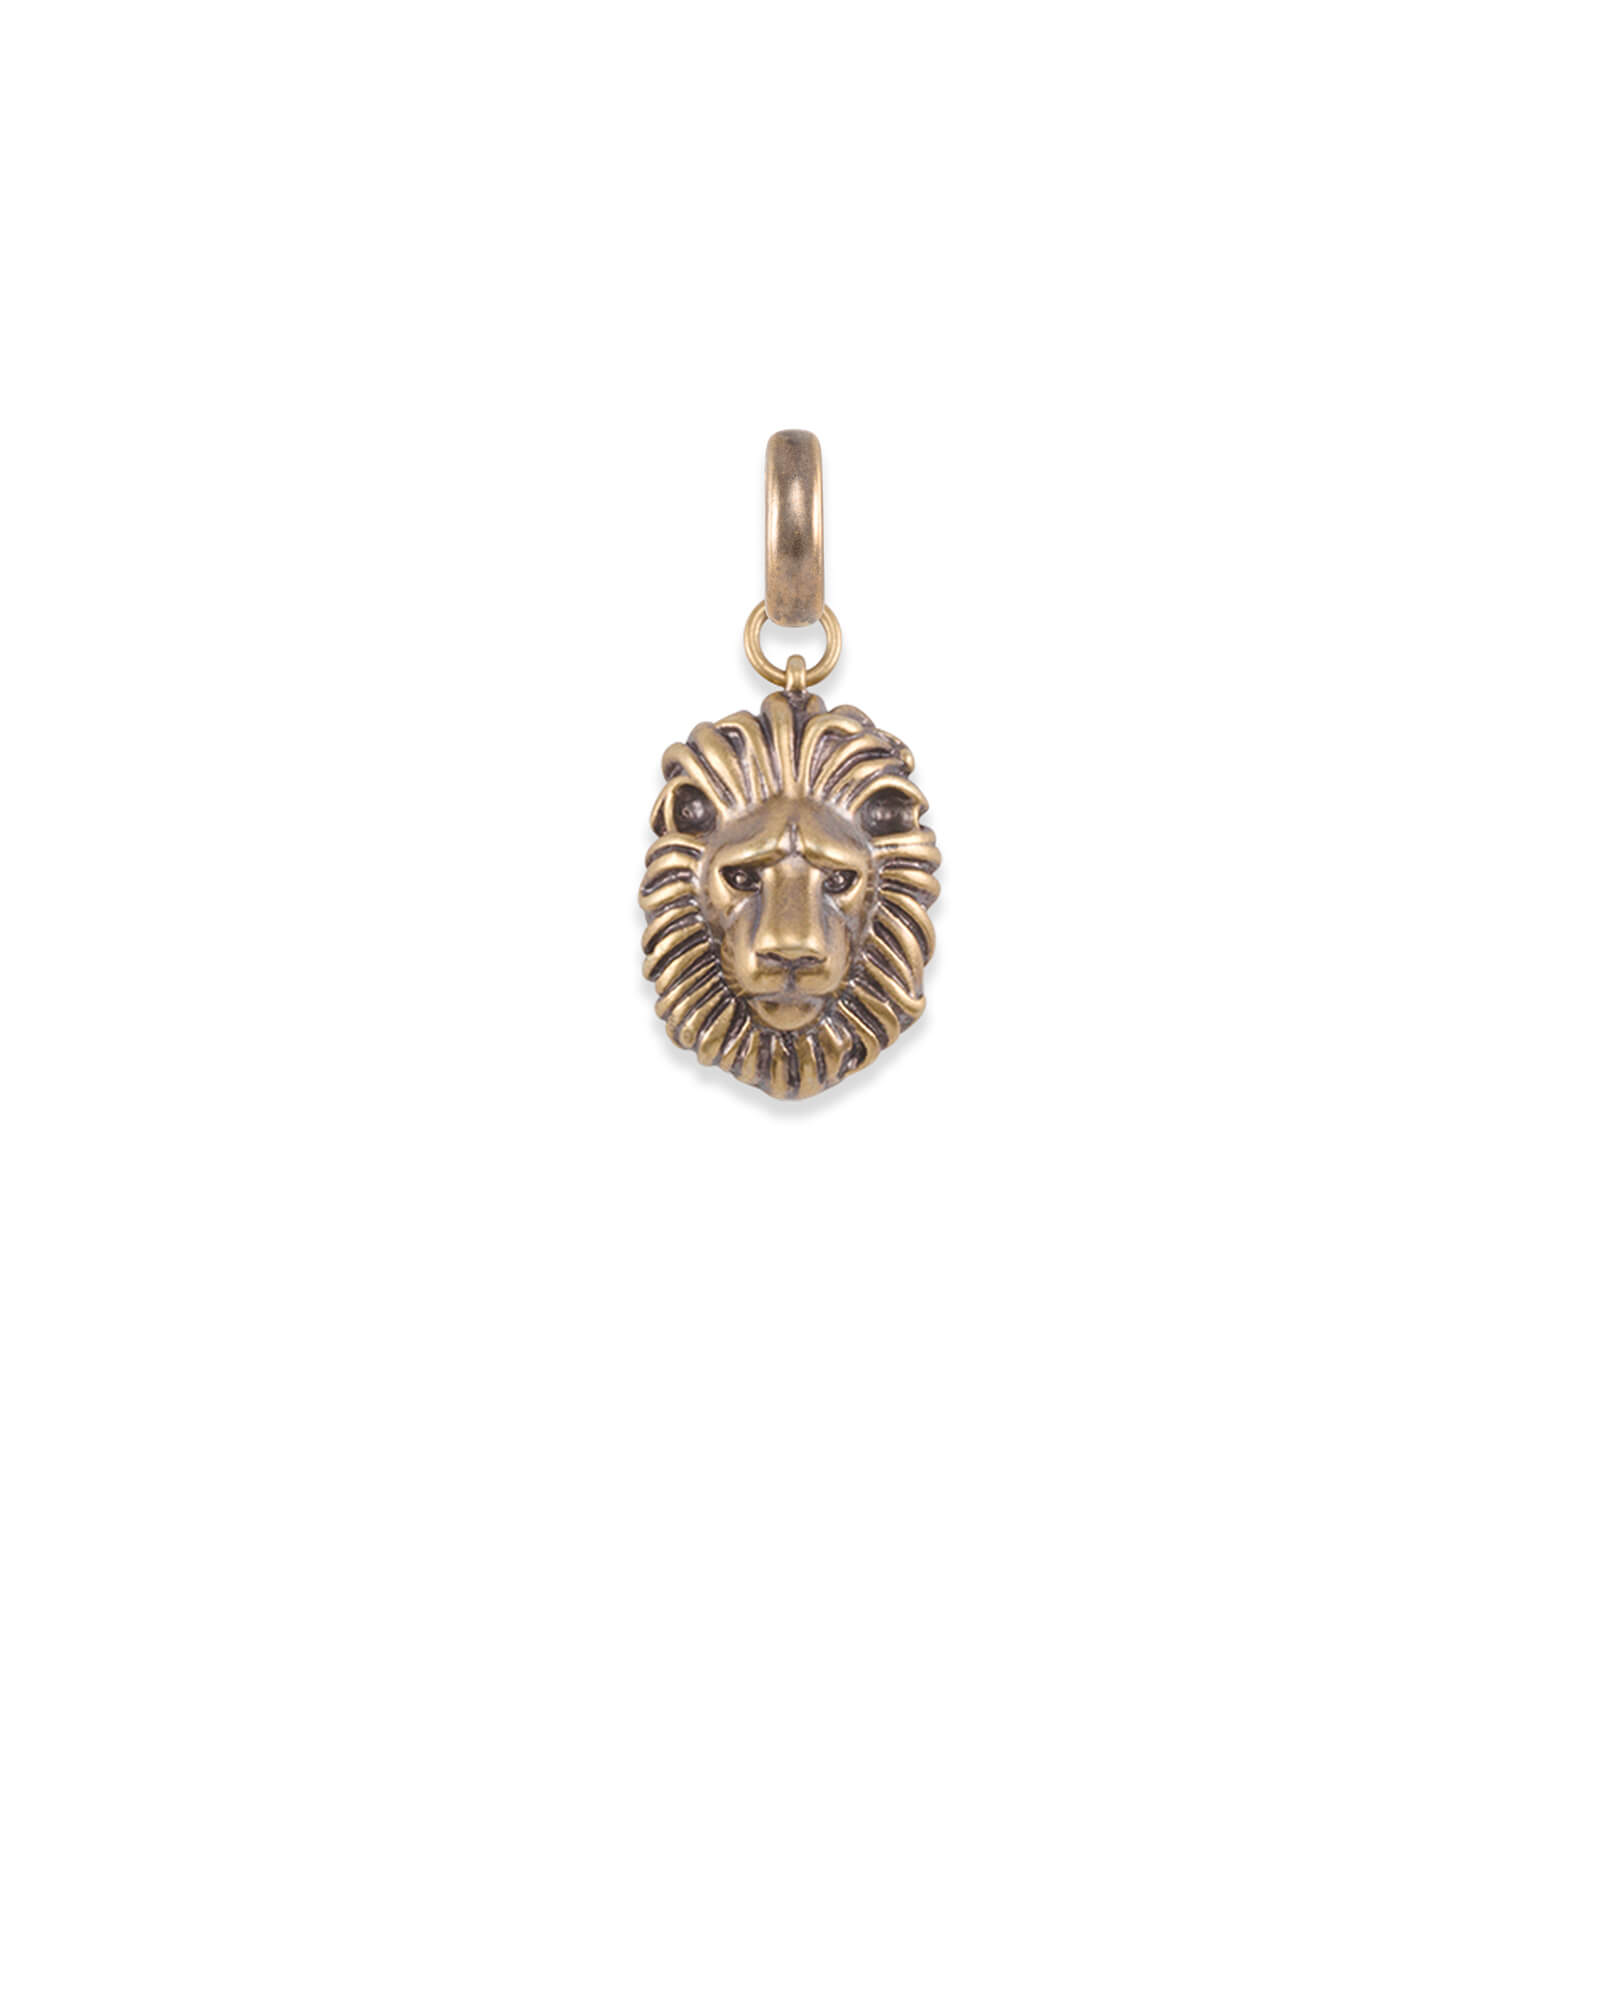 Small Lion Charm in Vintage Gold